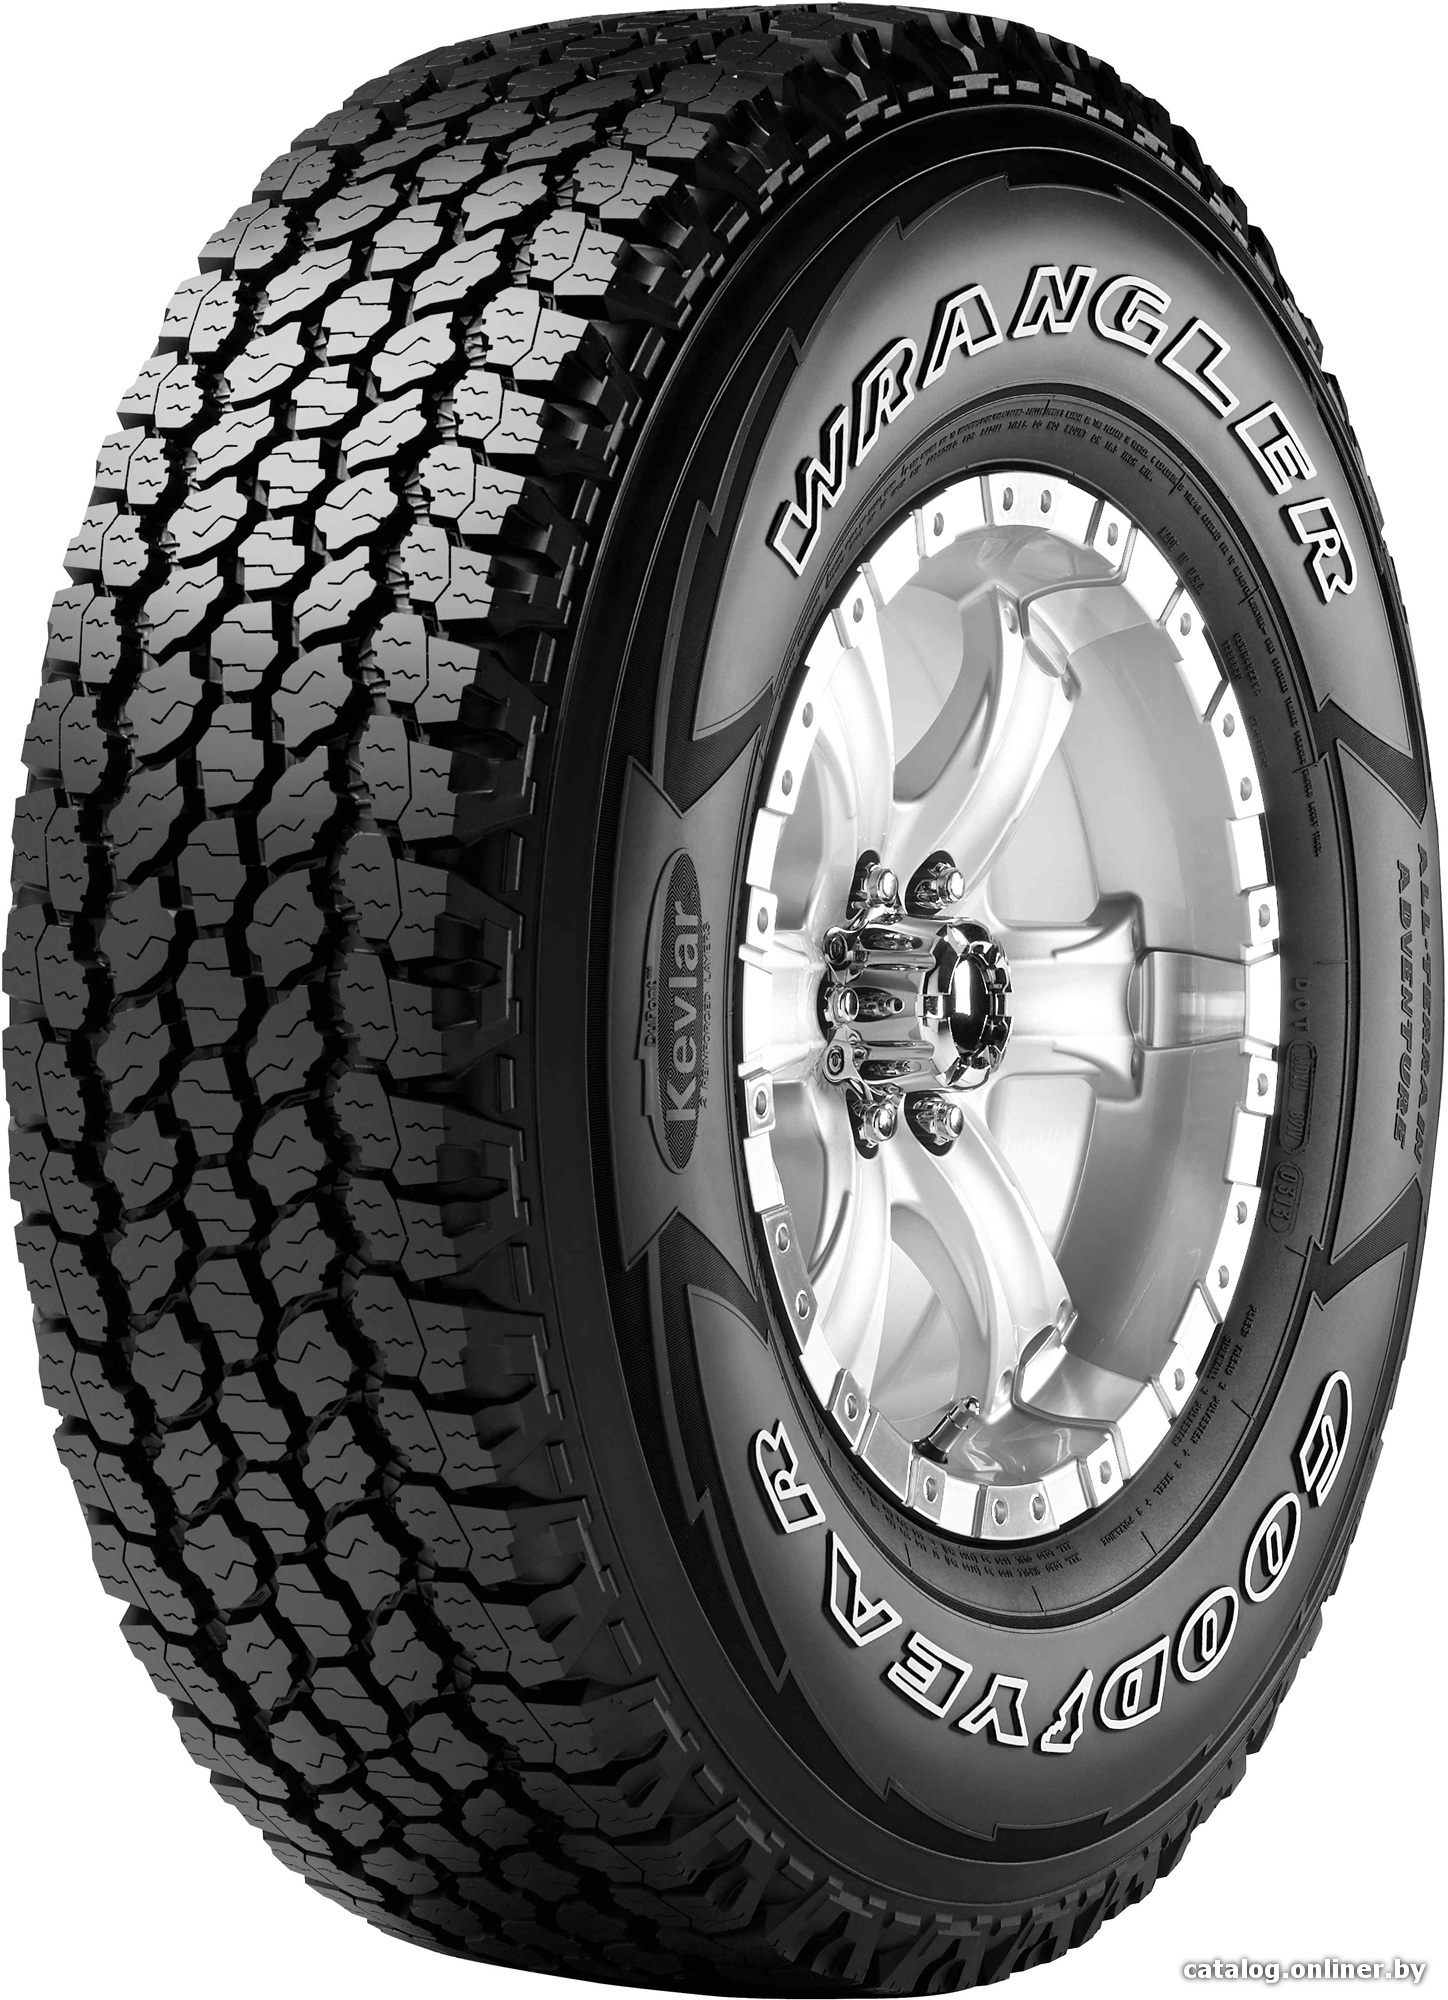 Автомобильные шины Goodyear Wrangler All-Terrain Adventure 31x10.50R15 109R